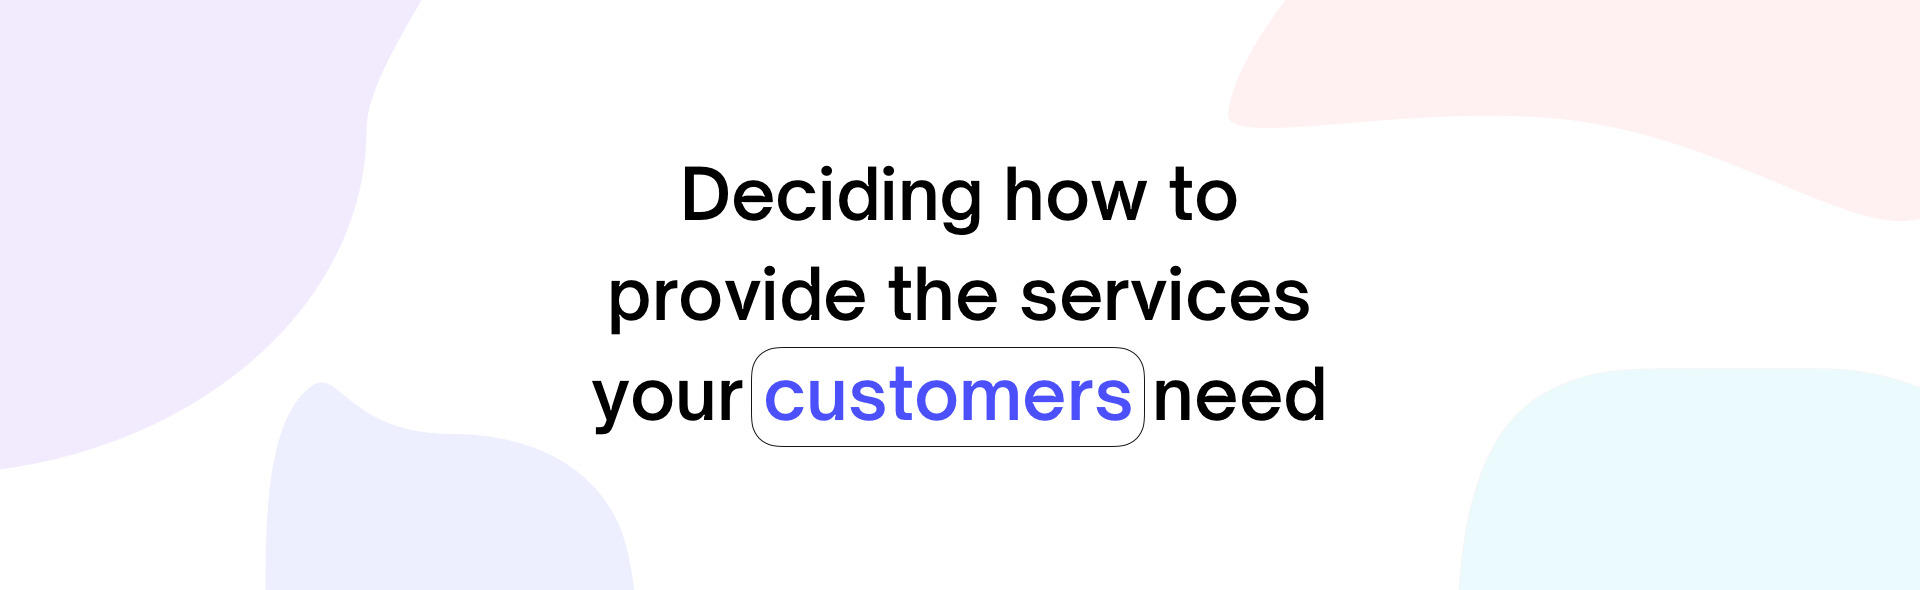 Deciding How to Provide the Services Your Customers Need